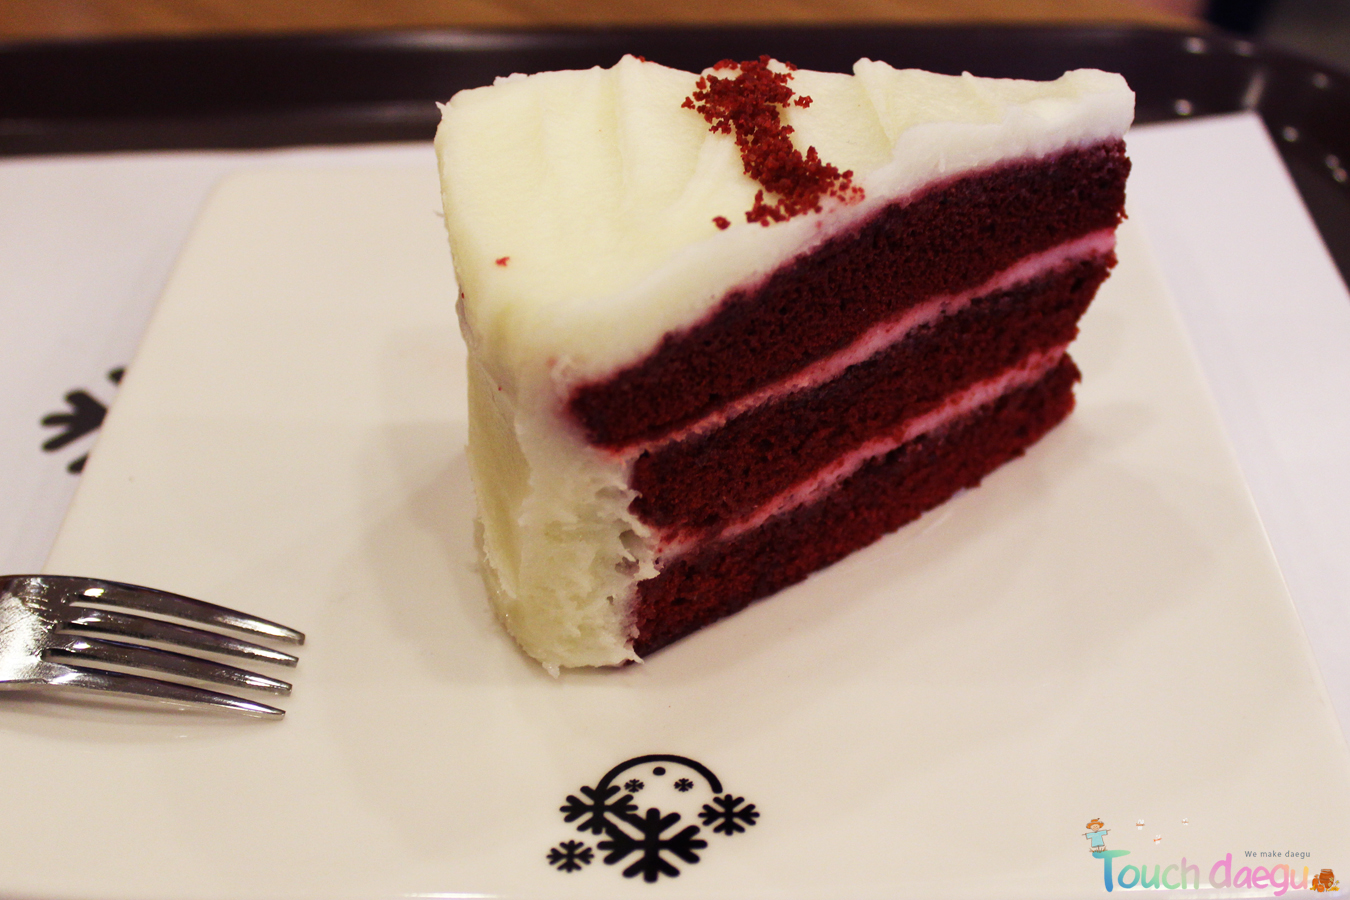 A piece of red velvet cake